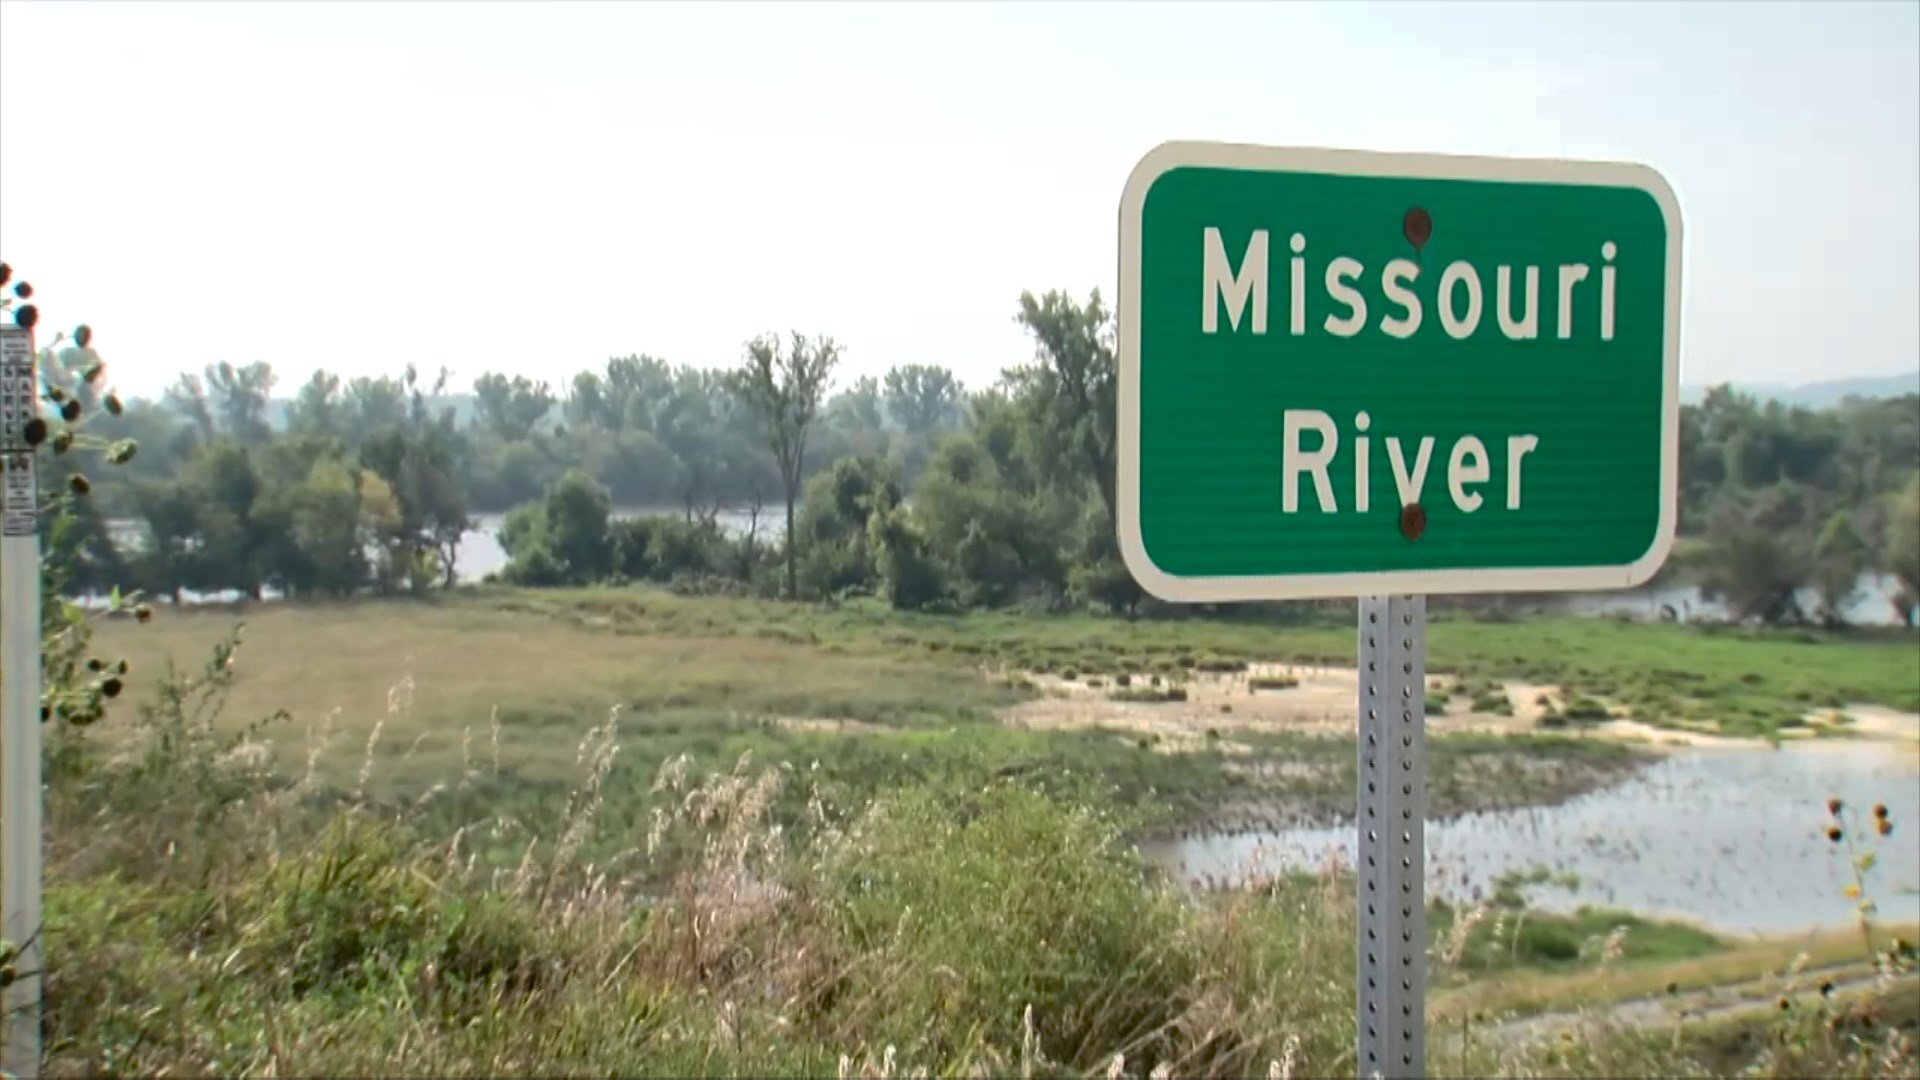 Iowa counties brace for likely flooding along Missouri River